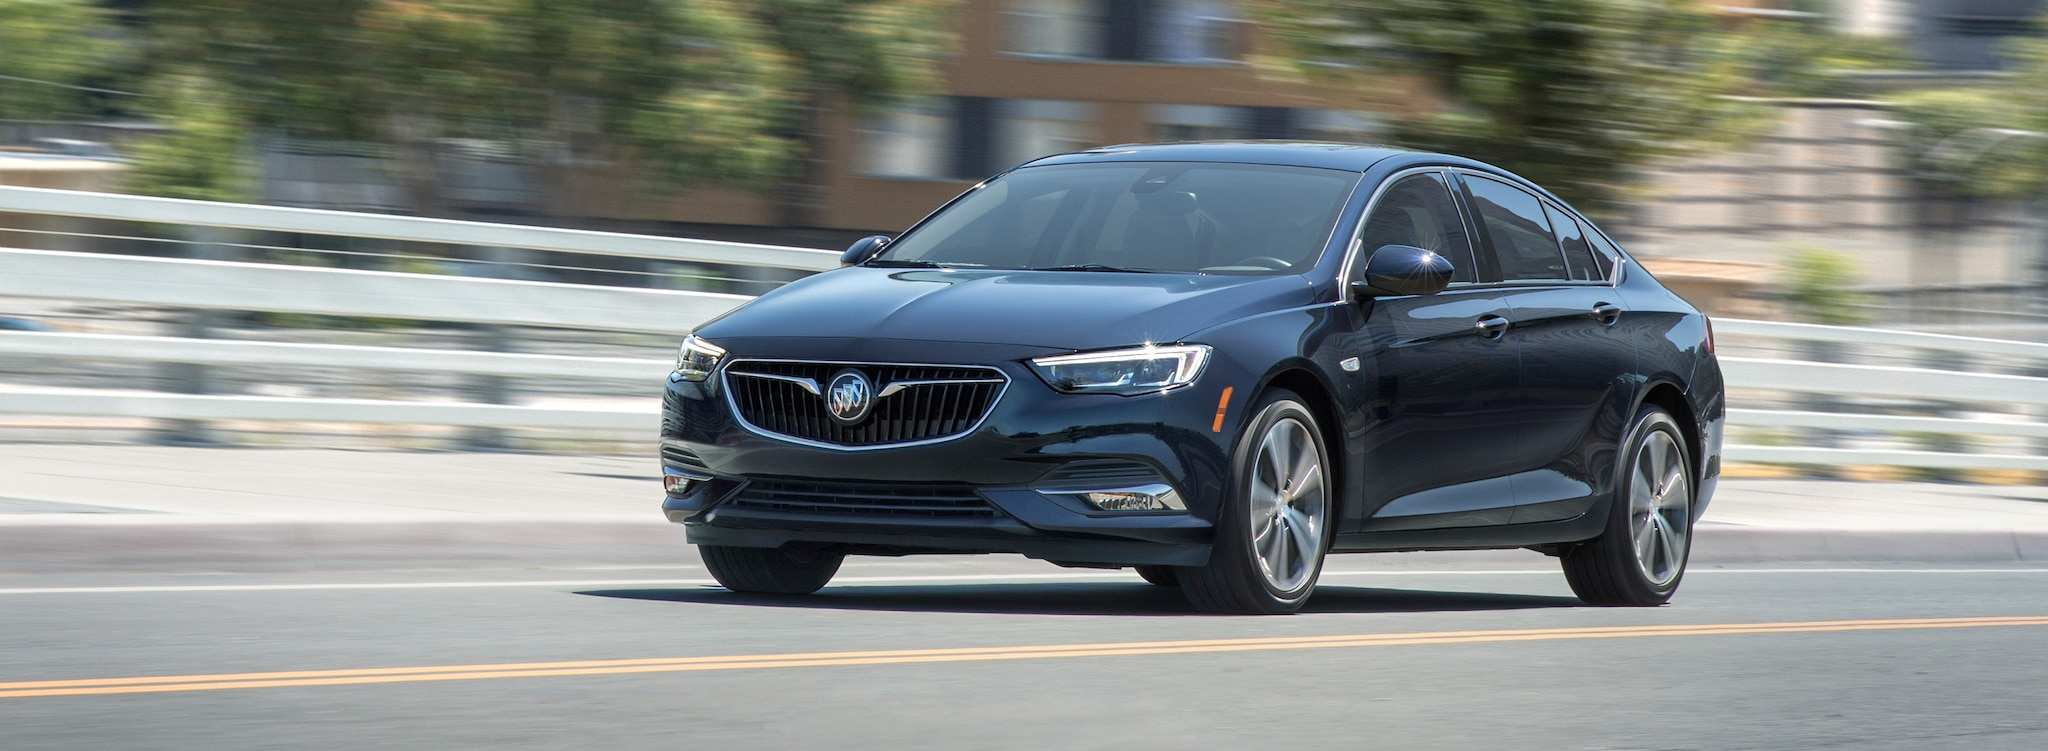 42 The Best 2019 Buick Lineup Review And Release Date